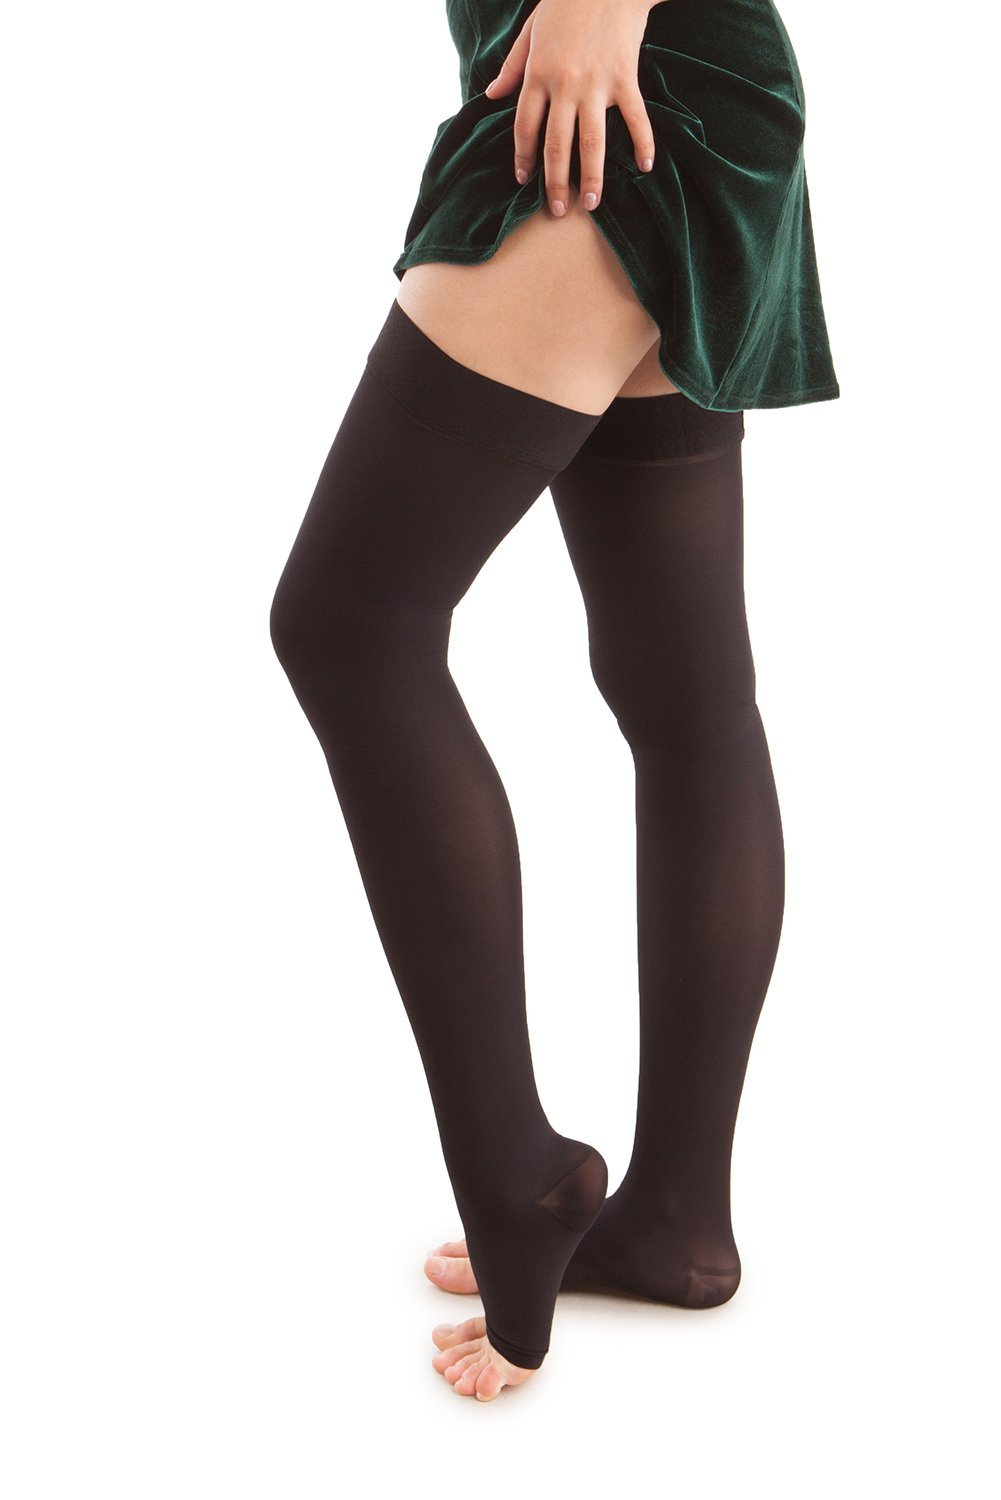 Microfiber Open Toe Thigh Highs - Graduated Strong Compression - 25 to 35 mmHG (H-306(O))